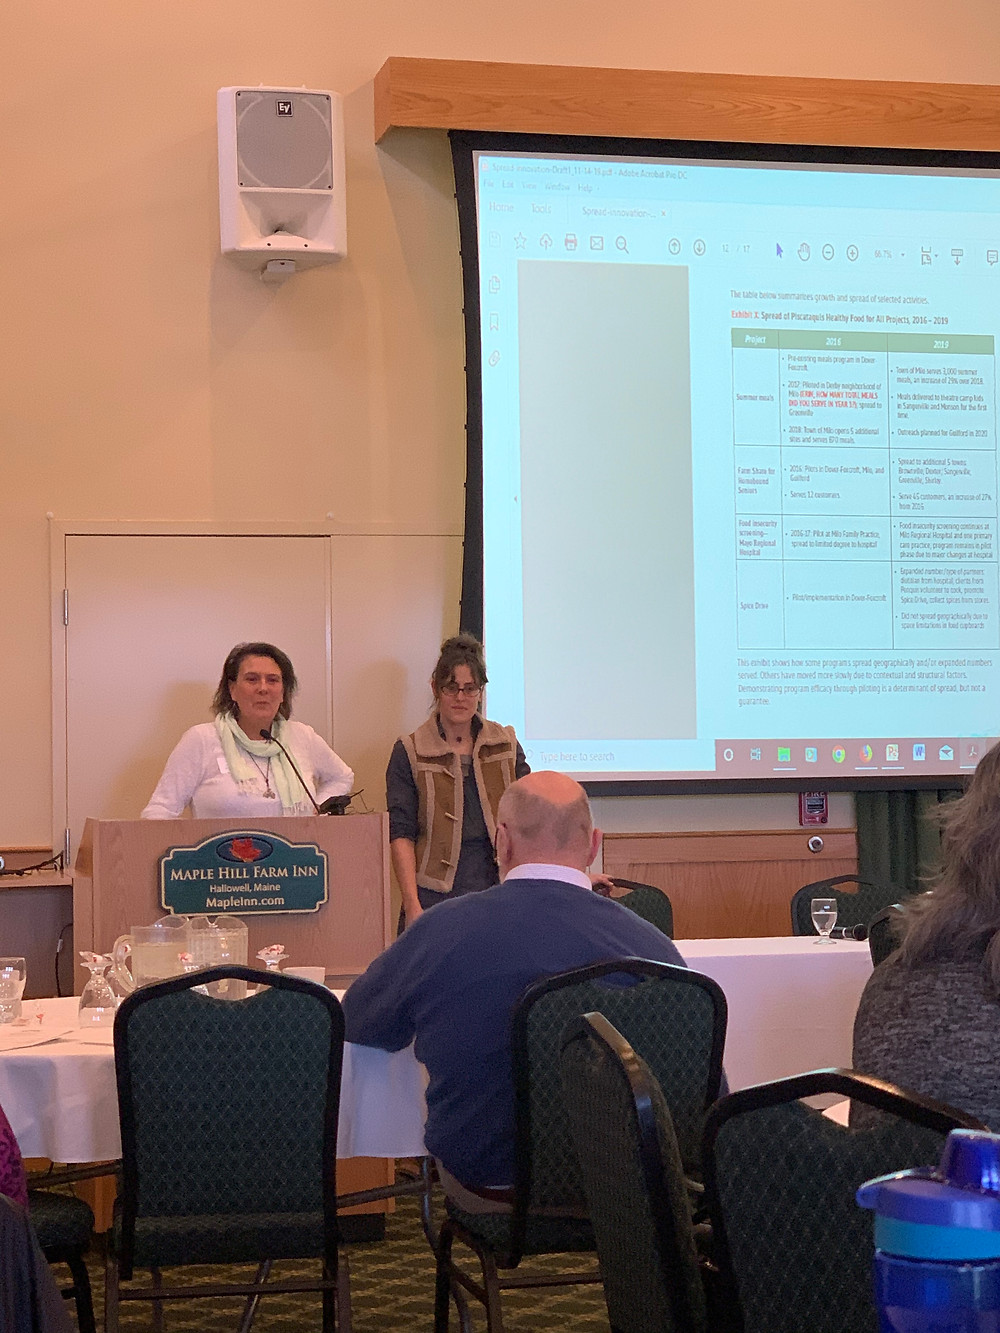 Here is a photo of Erin & Merrilee presenting at the MeHAF conference!